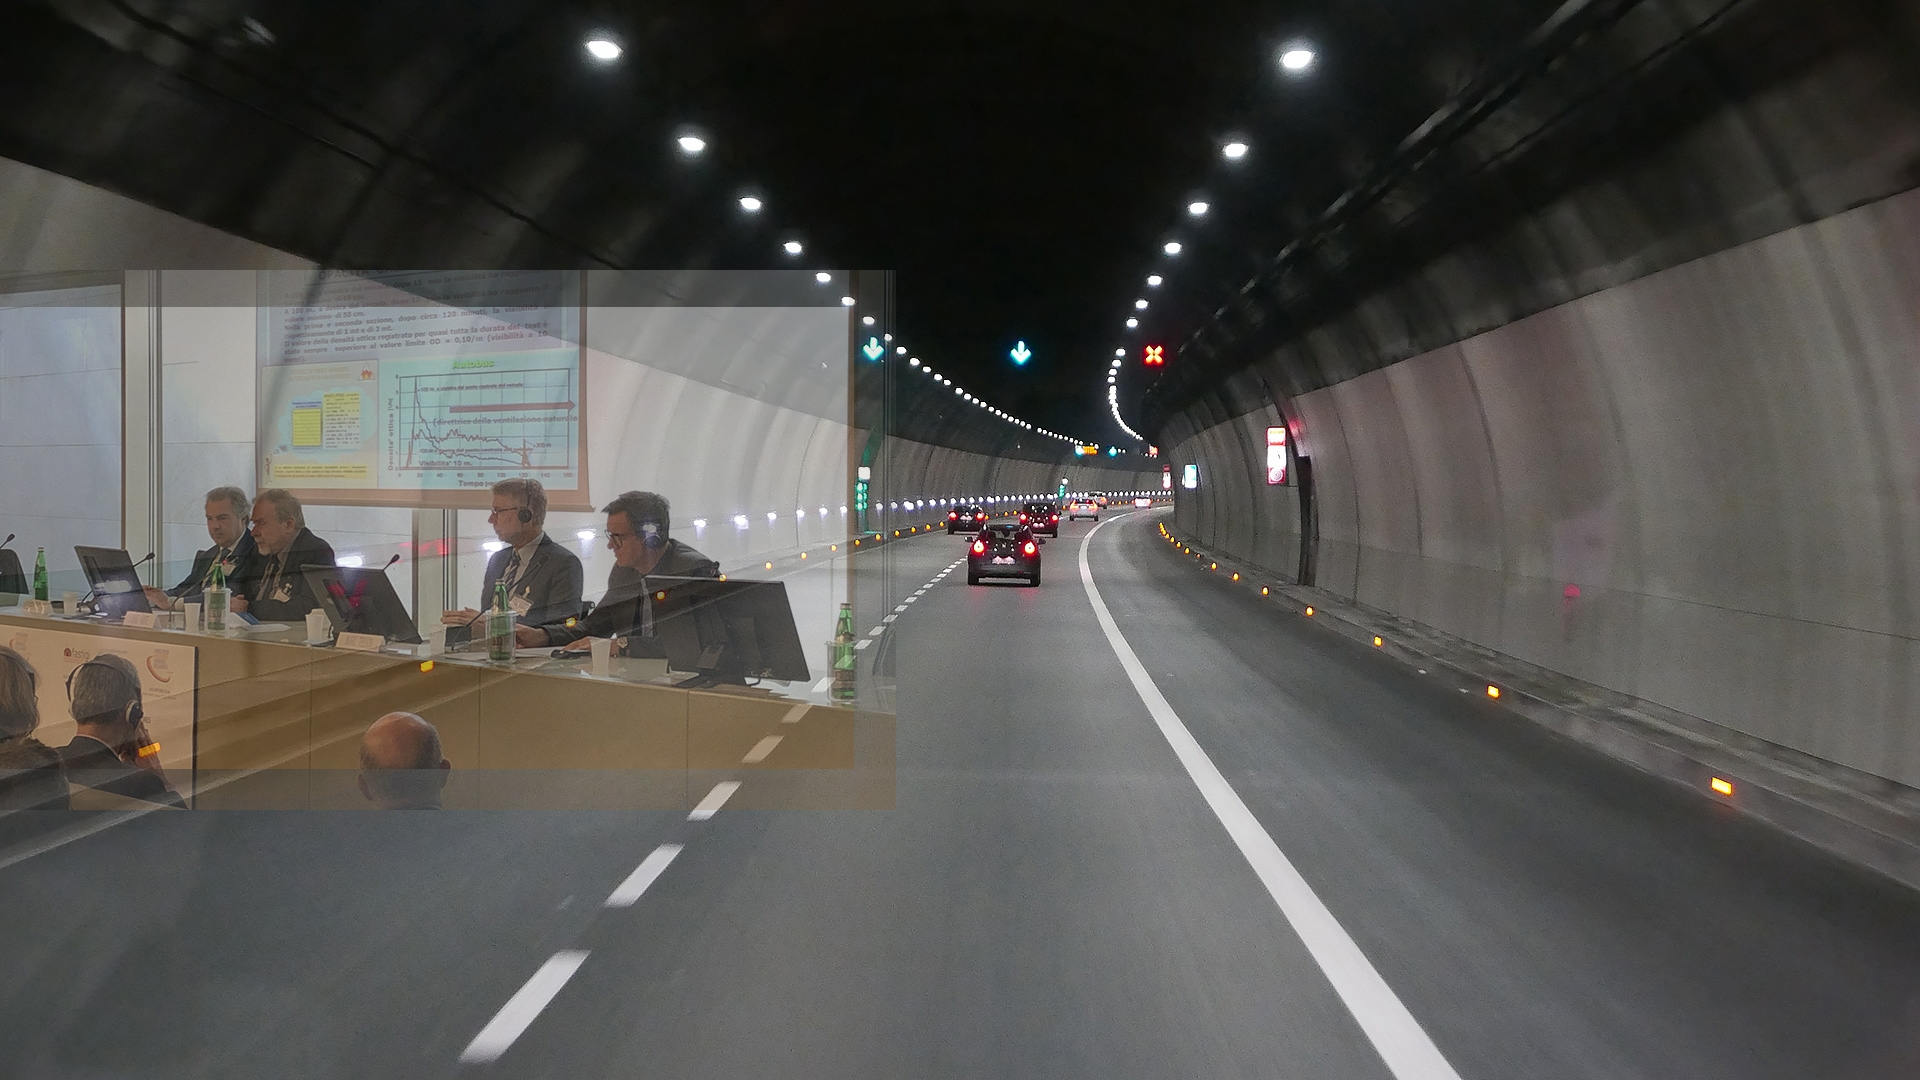 Alternative measures for tunnel safety